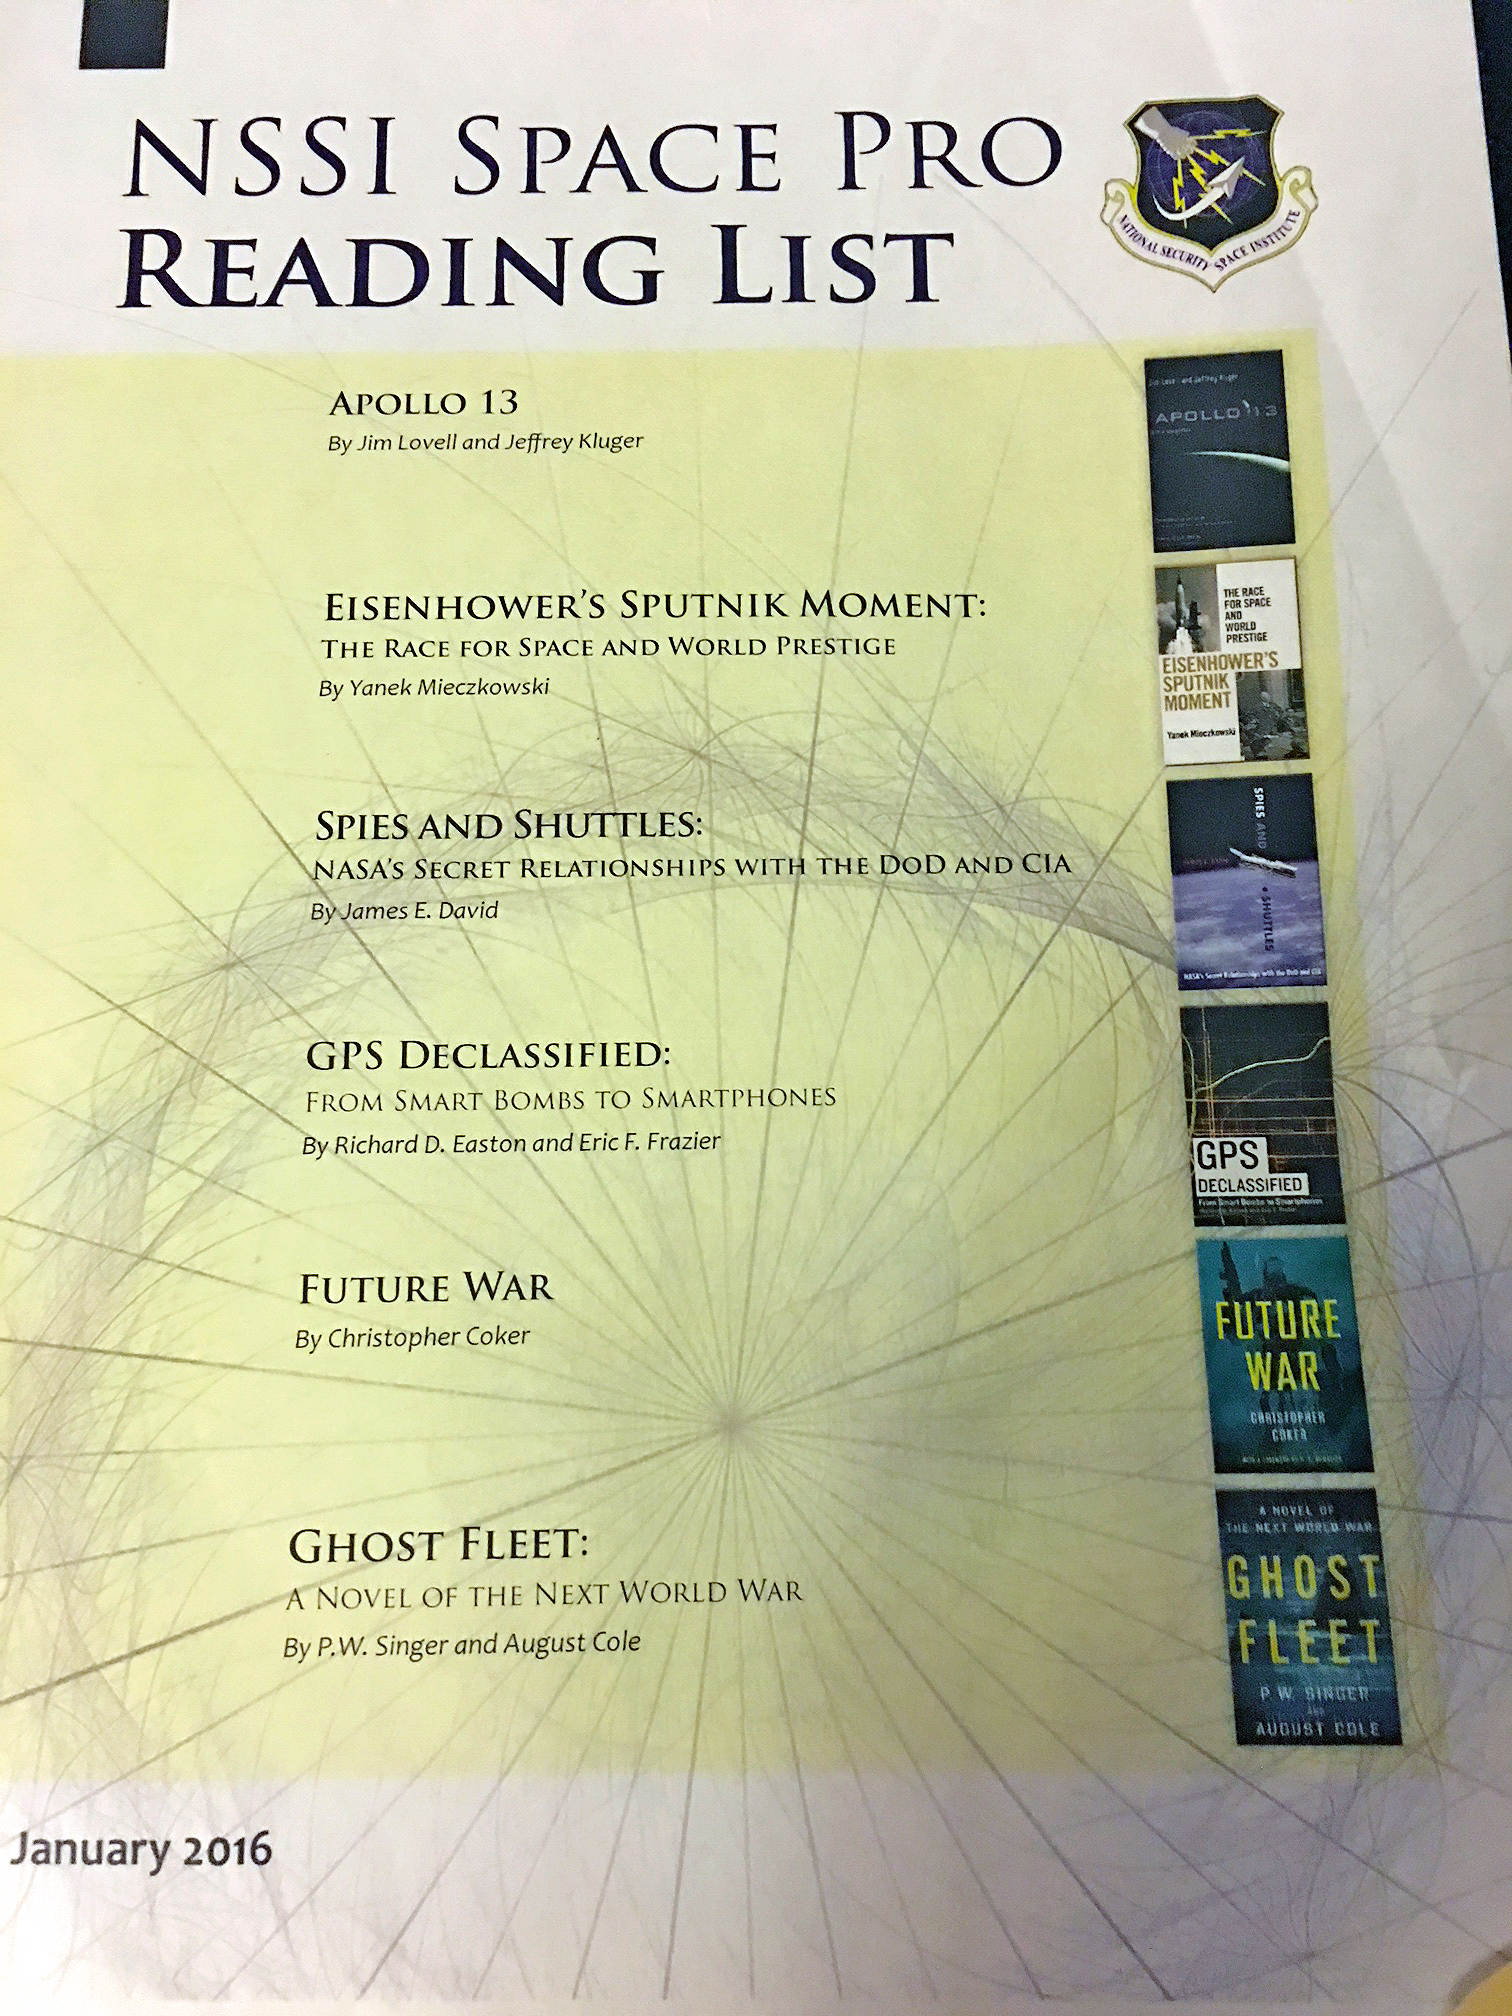 GPS Declassified is one of six titles chosen for the 2016 Space Professionals Reading List by NSSI